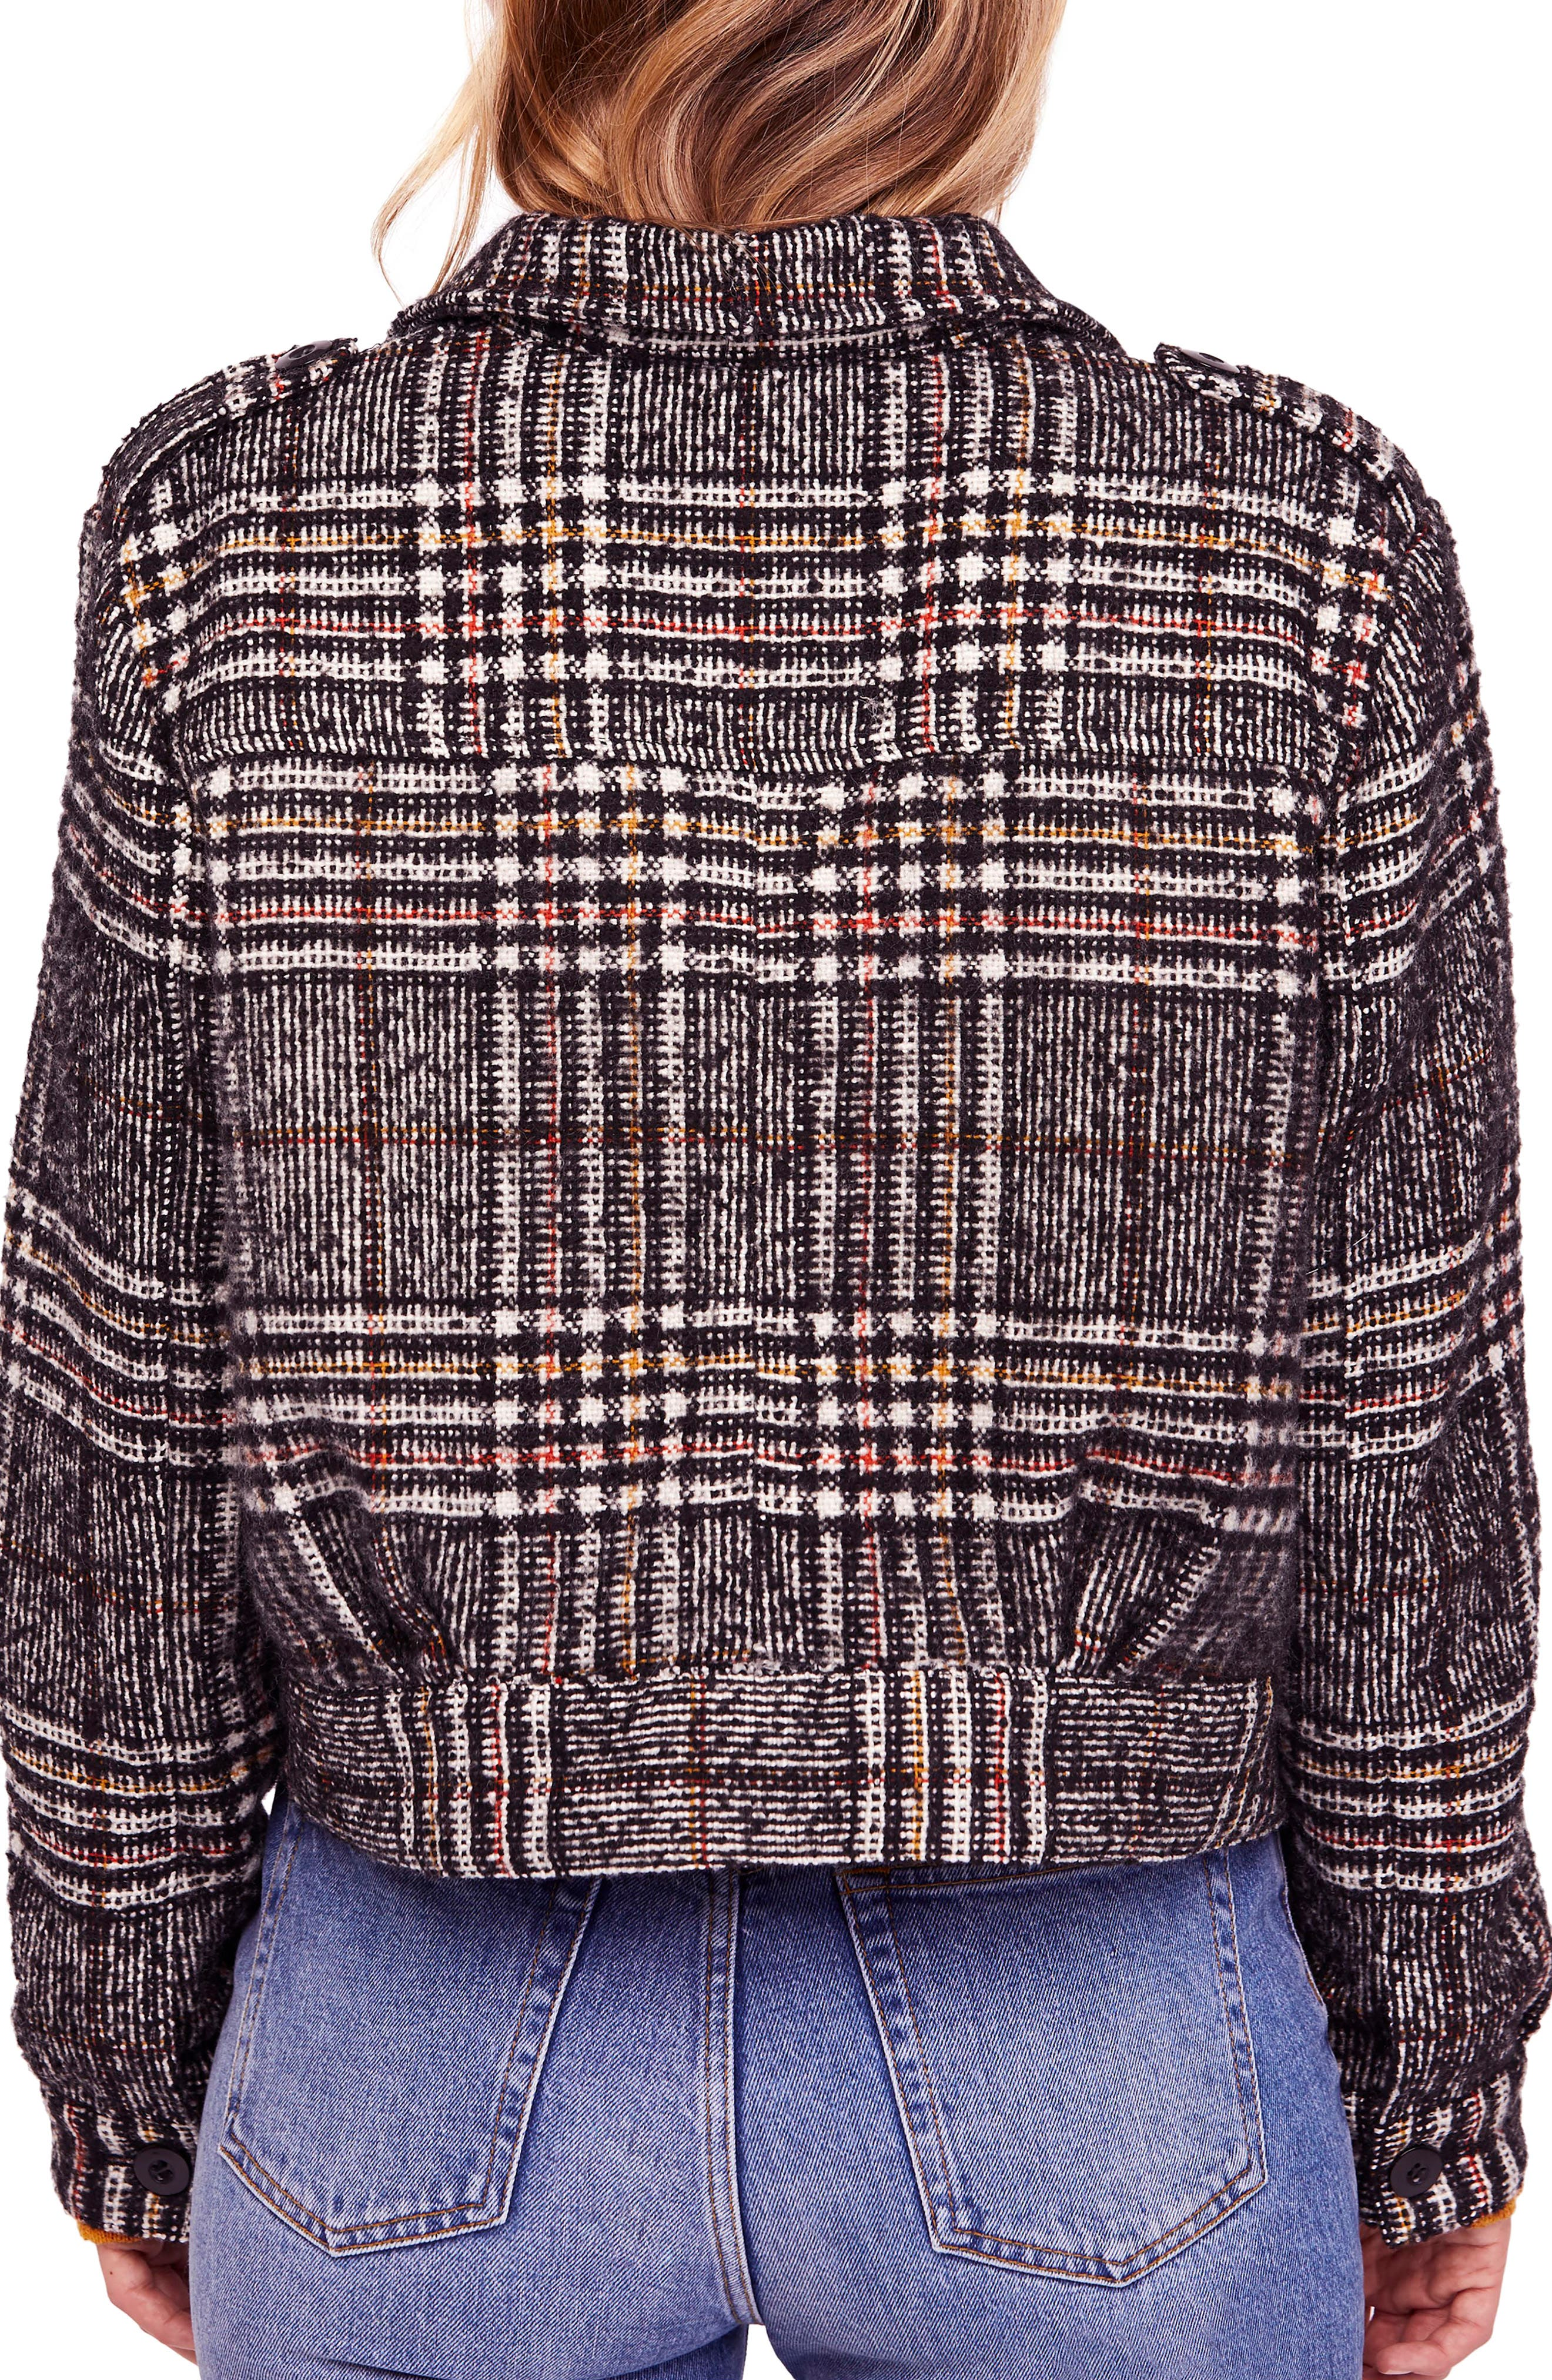 FREE PEOPLE,                             Eisenhower Slouchy Jacket,                             Alternate thumbnail 2, color,                             019